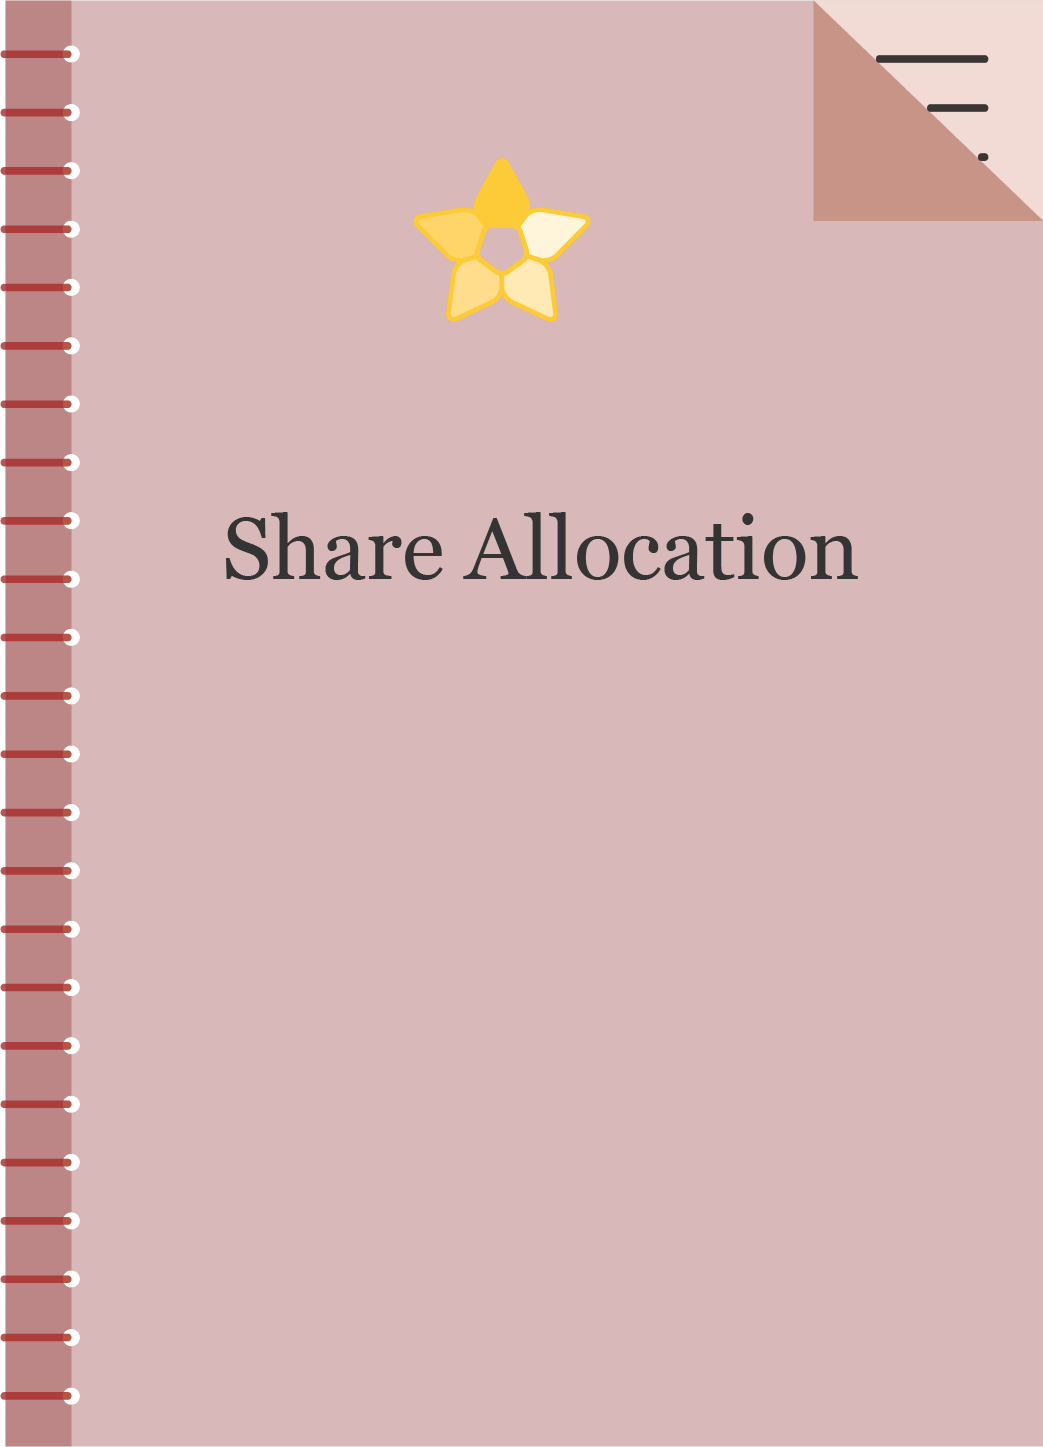 share-allocation-e8a6268afd53a0ff31bbe1775931c9df.png